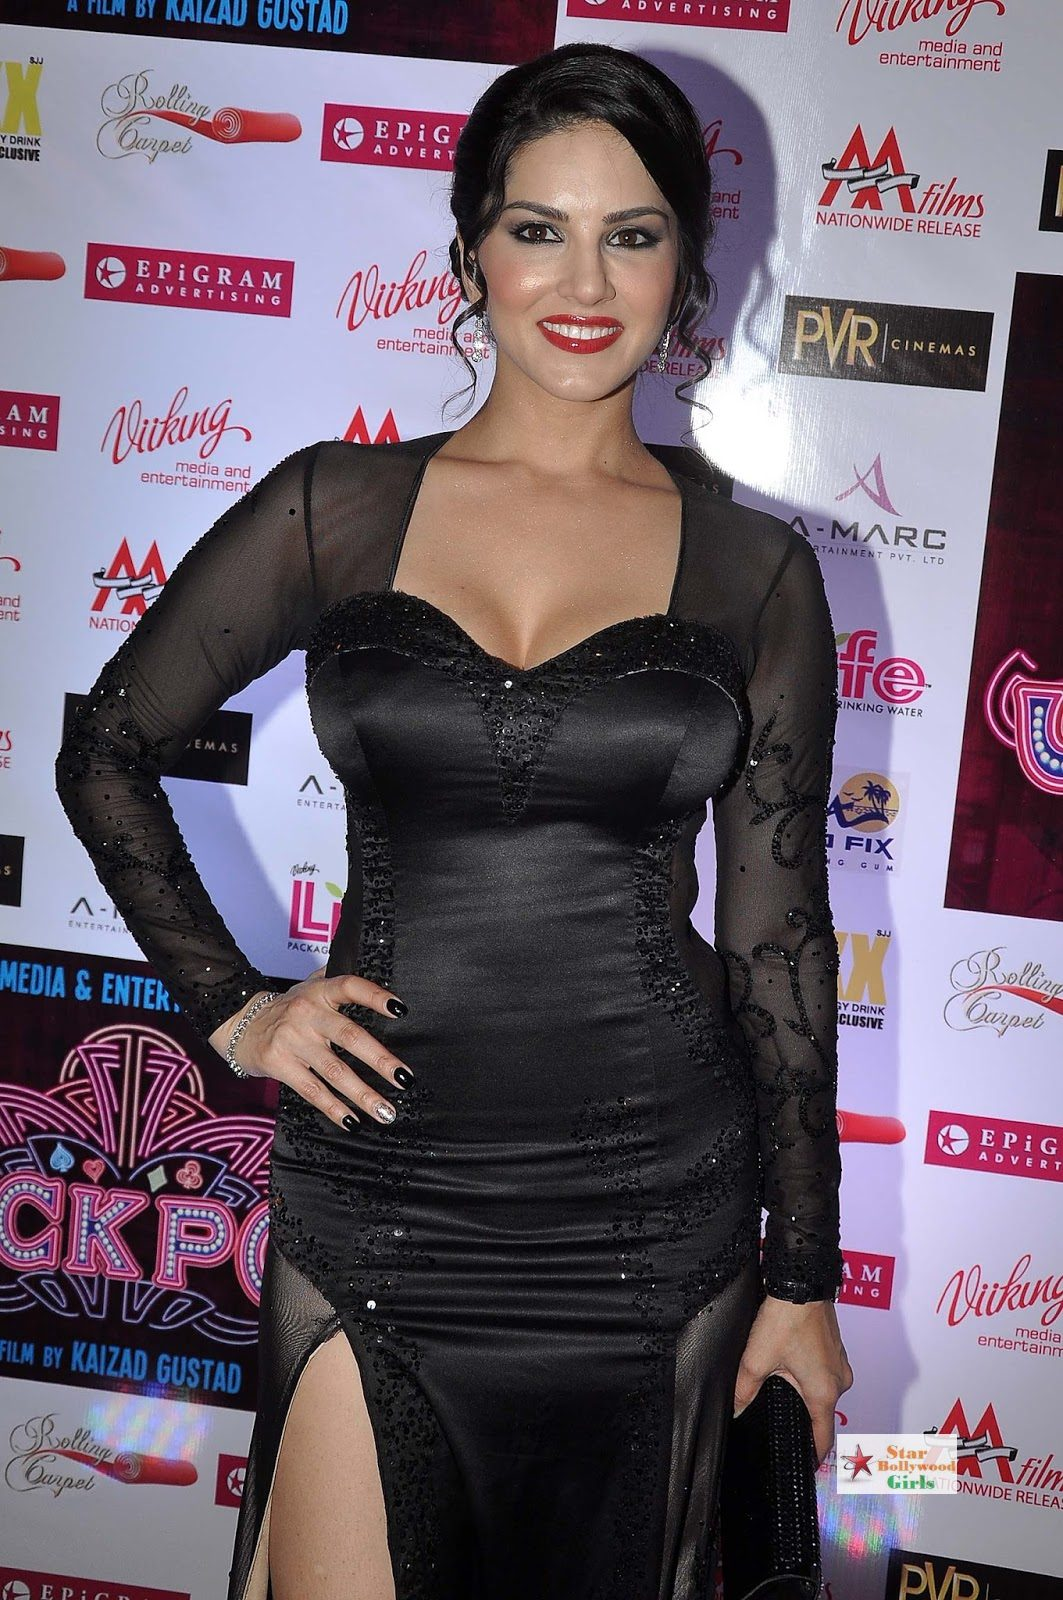 Sunny Leone Hot Skin Show In a Black See-through Dress At PVR Cinemas in Juhu1